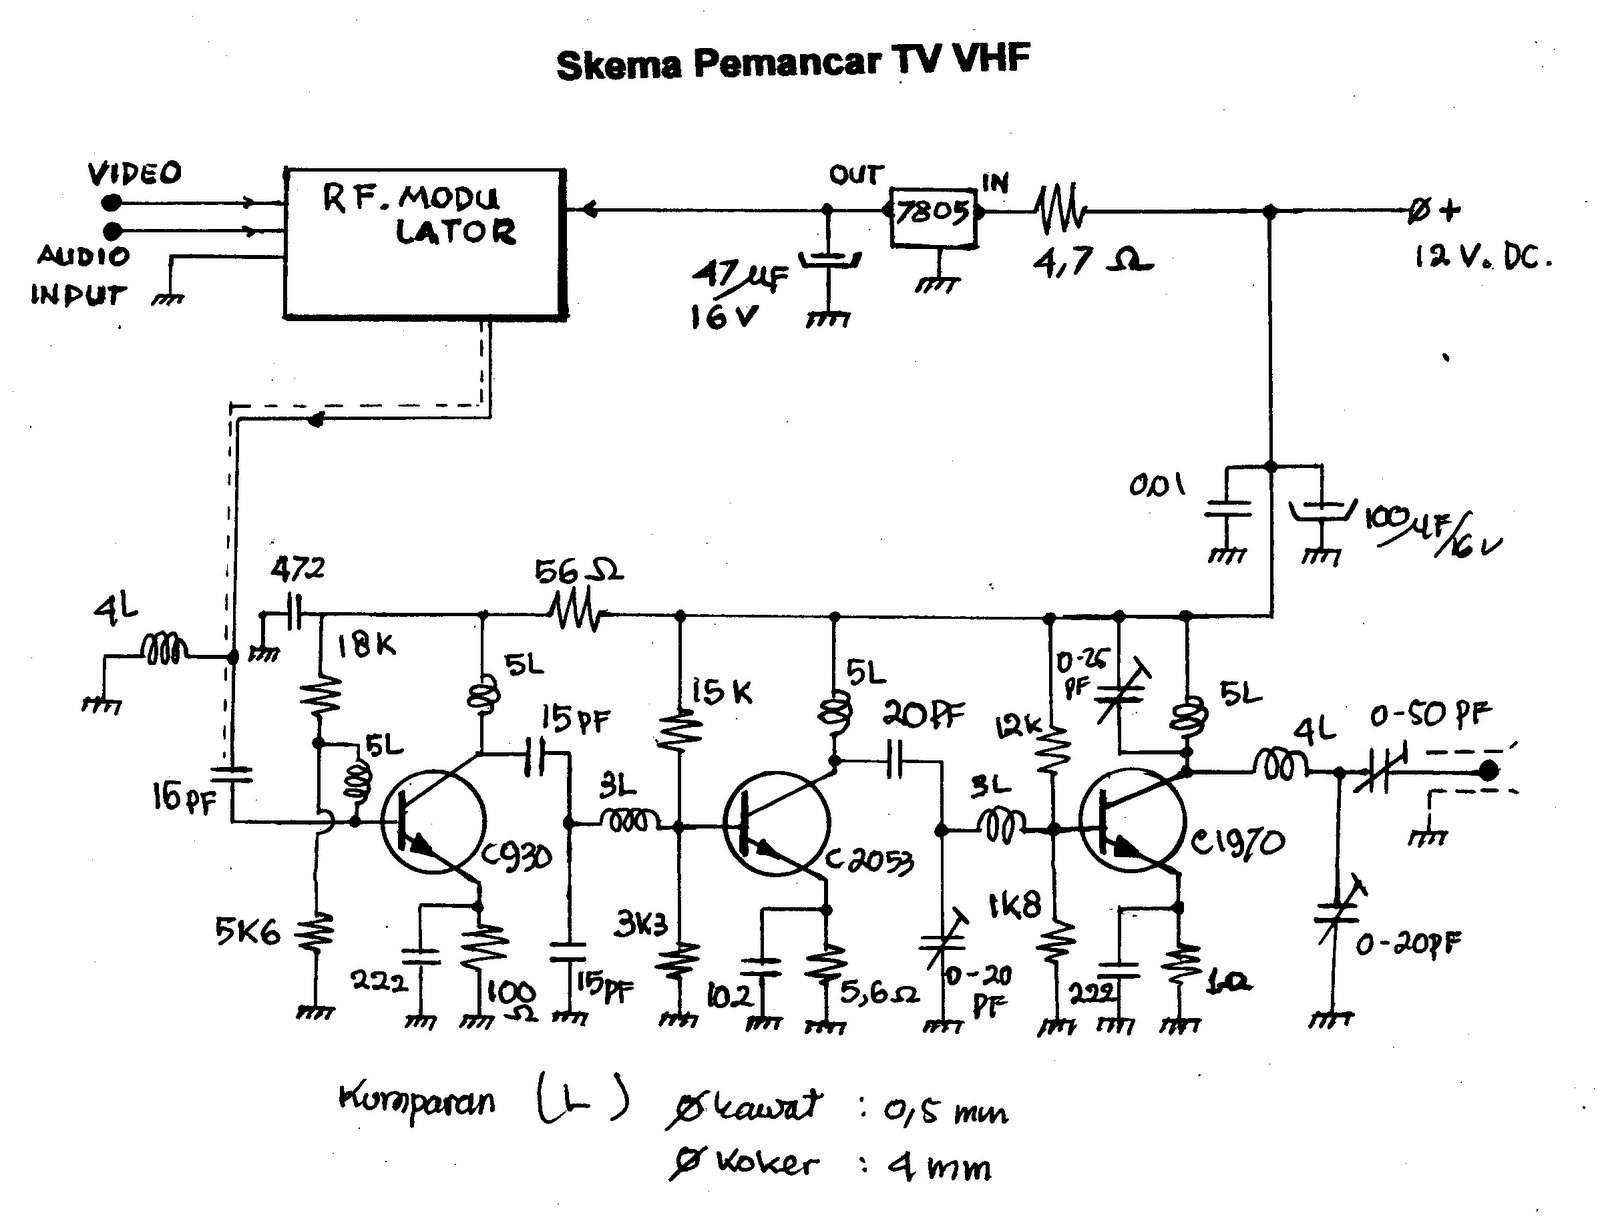 rf modulator hookup diagram wiring for a 4 way switch how to wire fm amplifier vhf tv